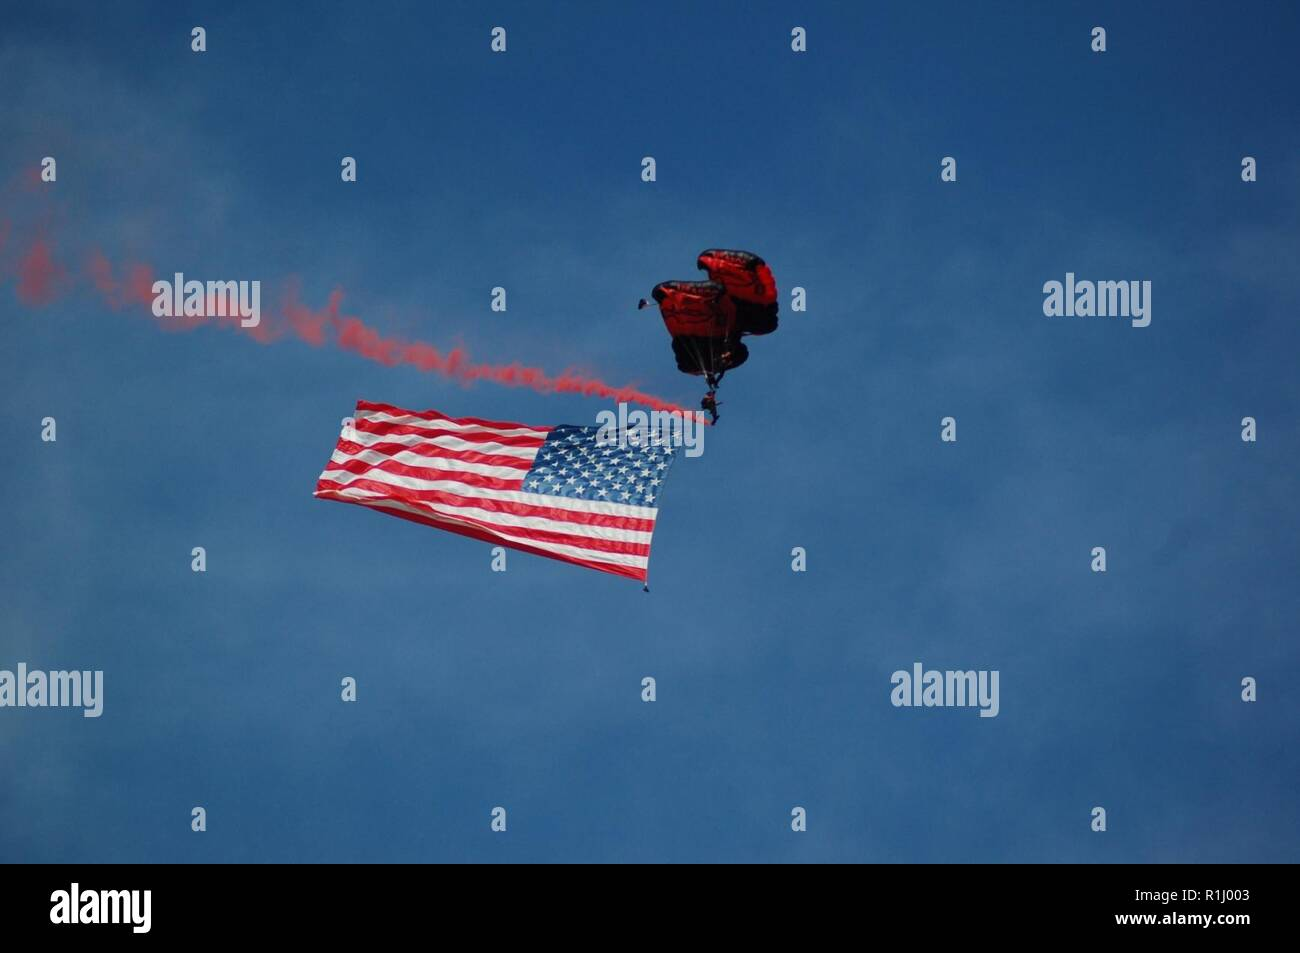 A member of the US Army's Black Daggers Parachute Team flies the American Flag during the 2018 NAS Oceana Air Show. Stock Photo